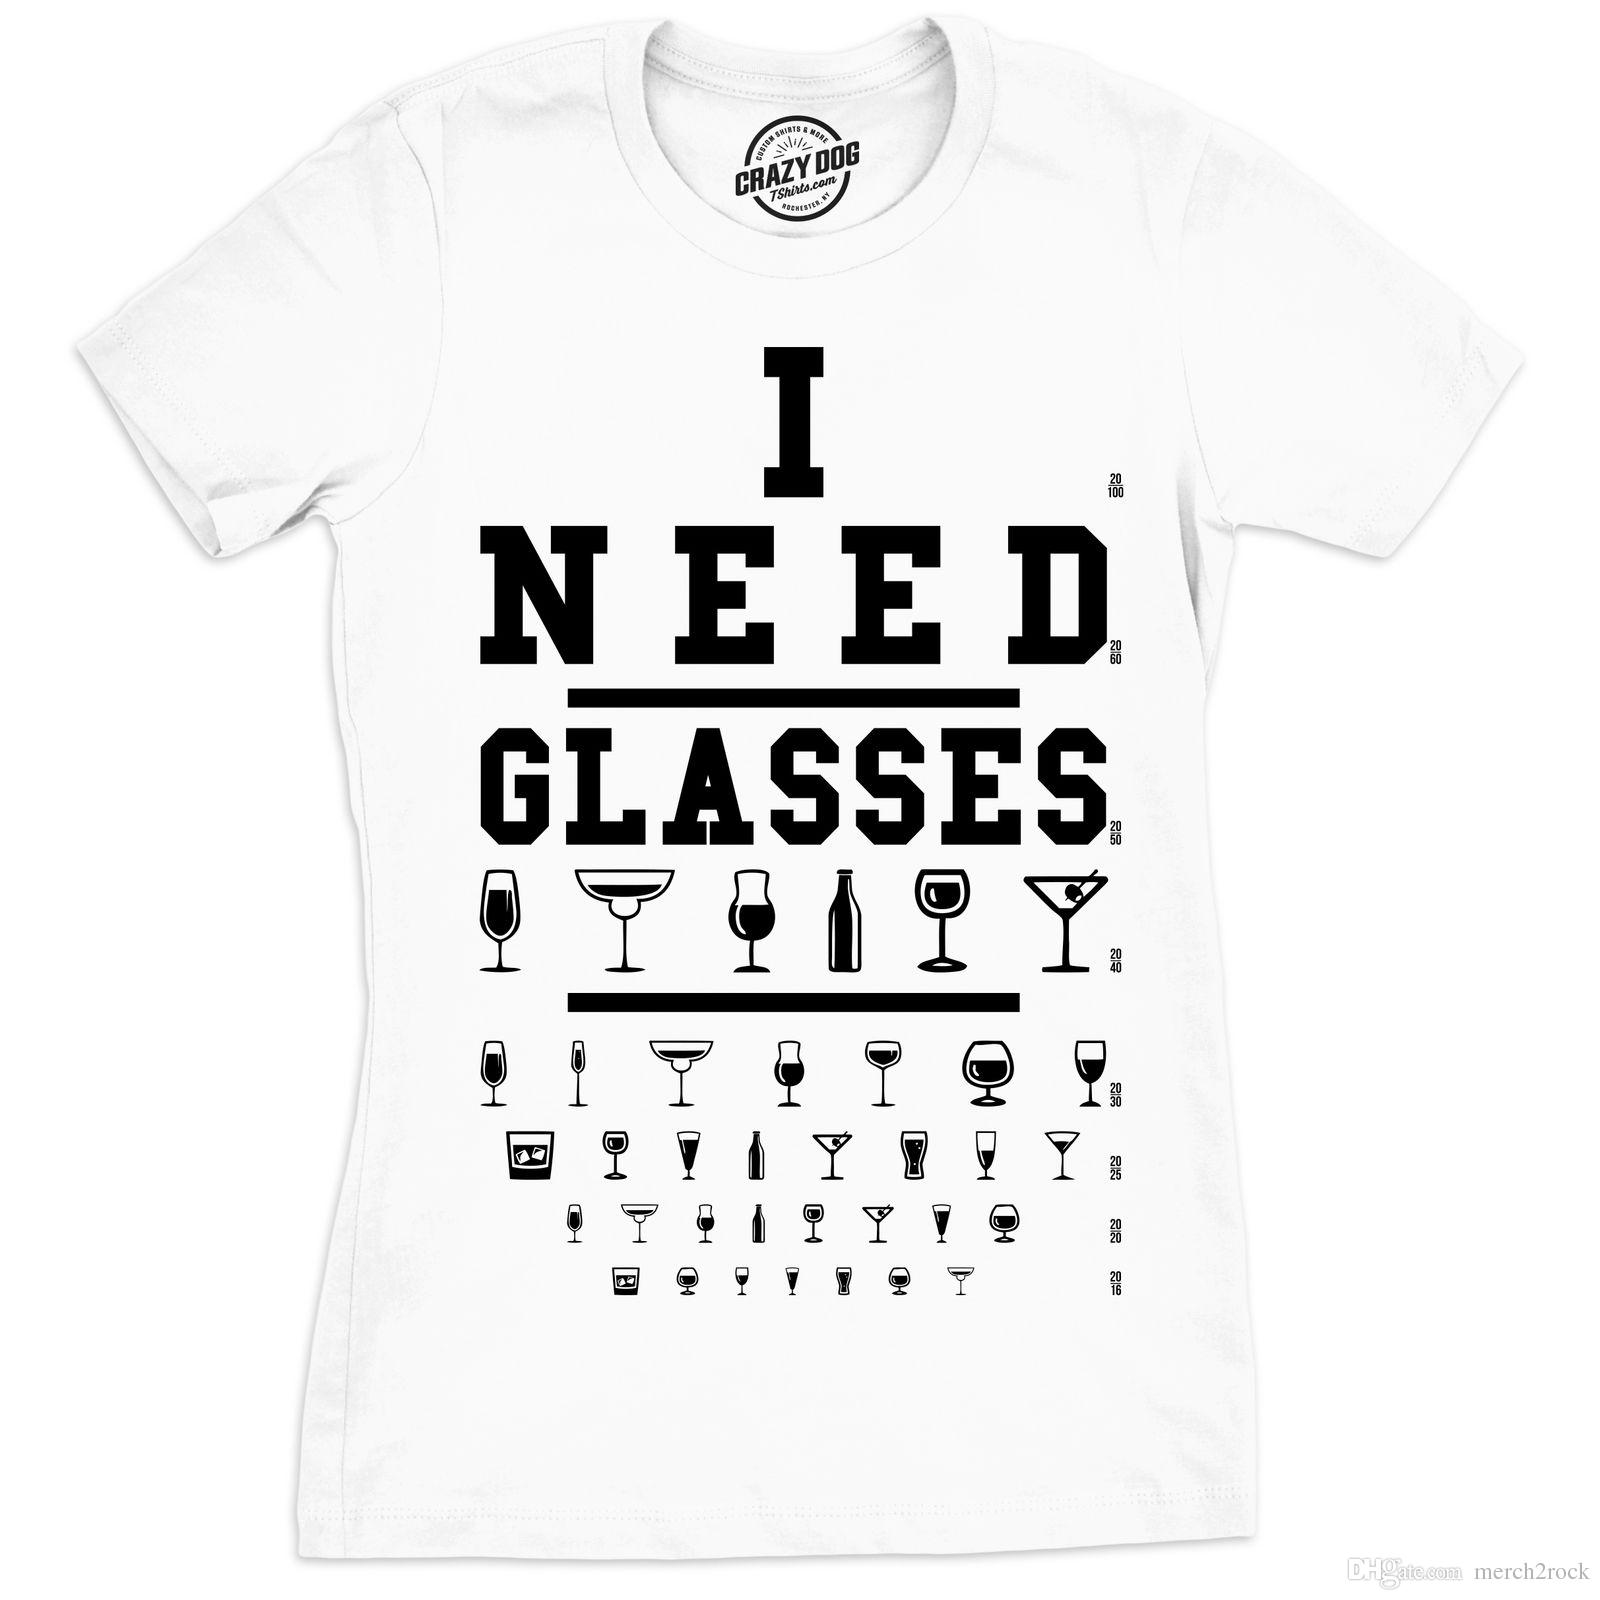 7861f32e Womens I Need Glasses Tshirt Funny Drinking Wine Cocktail Tee For Ladies XL  10 T Shirt Awesome T Shirts Online From Merch2rock, $10.95| DHgate.Com